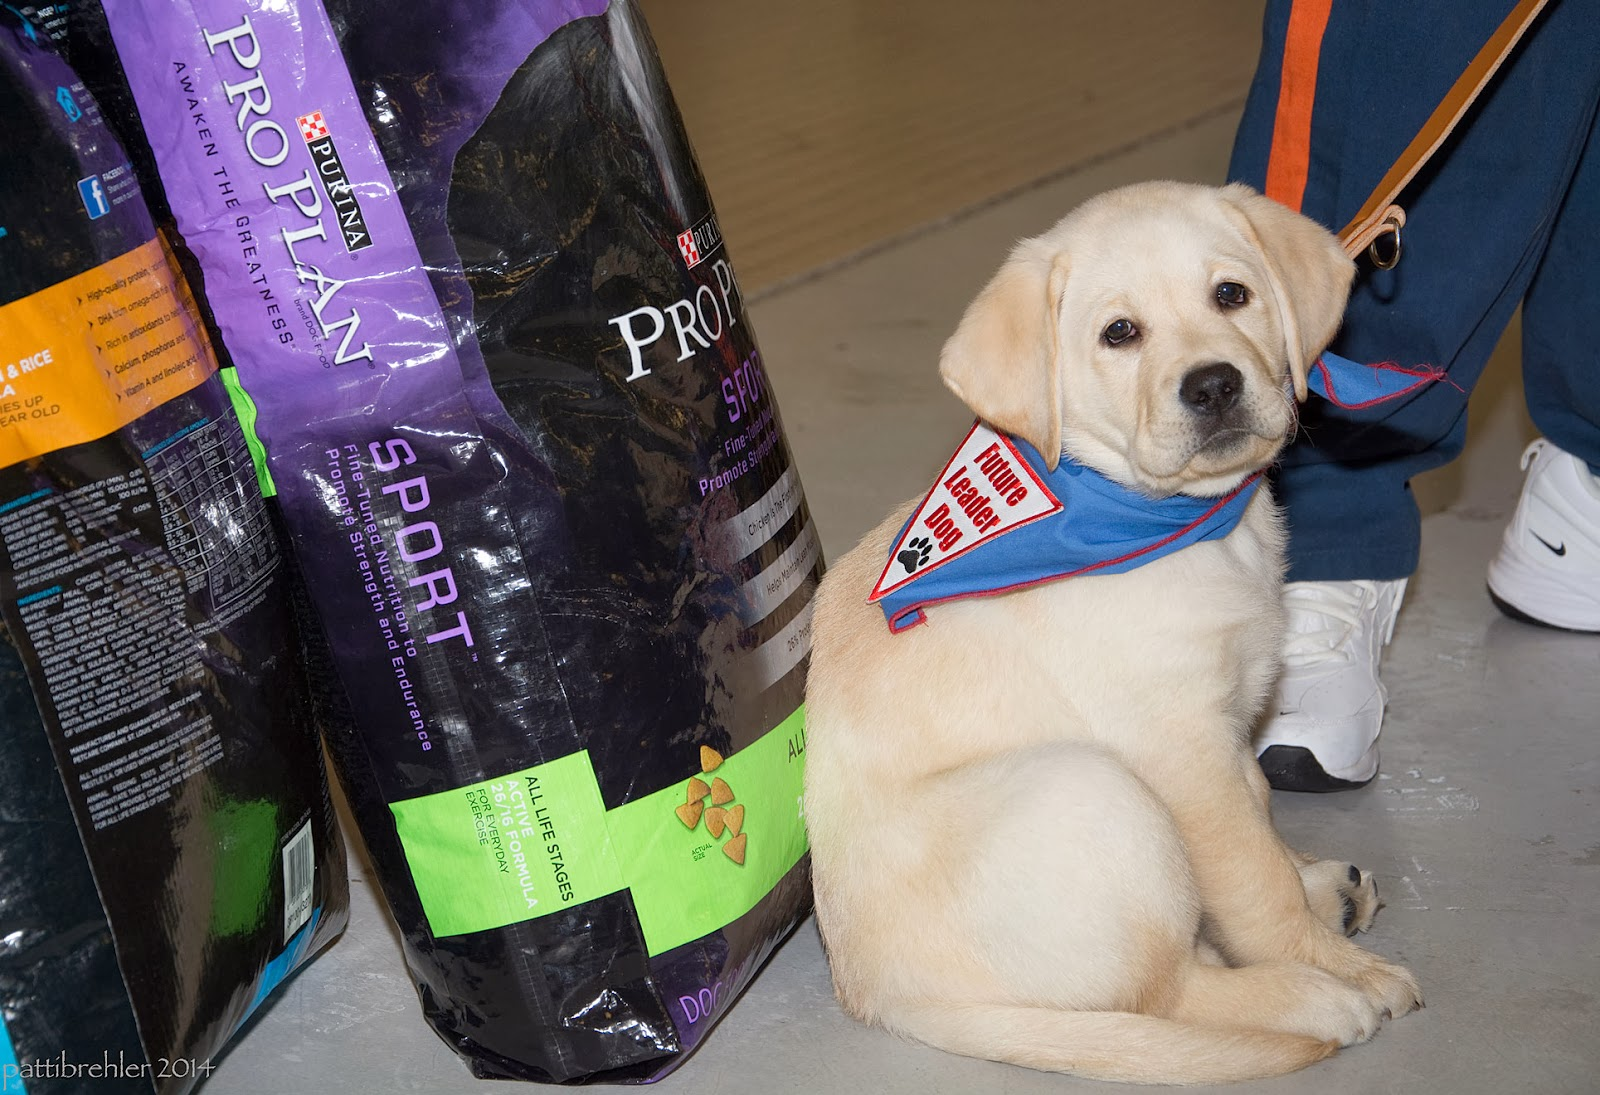 A fluffy little yellow lab puppy is sitting on the floor on the right side of the photo with a leash going up to the right. He is wearing a blue bandana with a white triangle patch with red letters that say Future Leader Dog and a black paw print. There are blue pant legs with an orange stripe and white tennis shoes visible behind the puppy. On the left side of the photo are two 50 pound bags of Purina Pro Plan dog food. The puppy is looking at the camera.